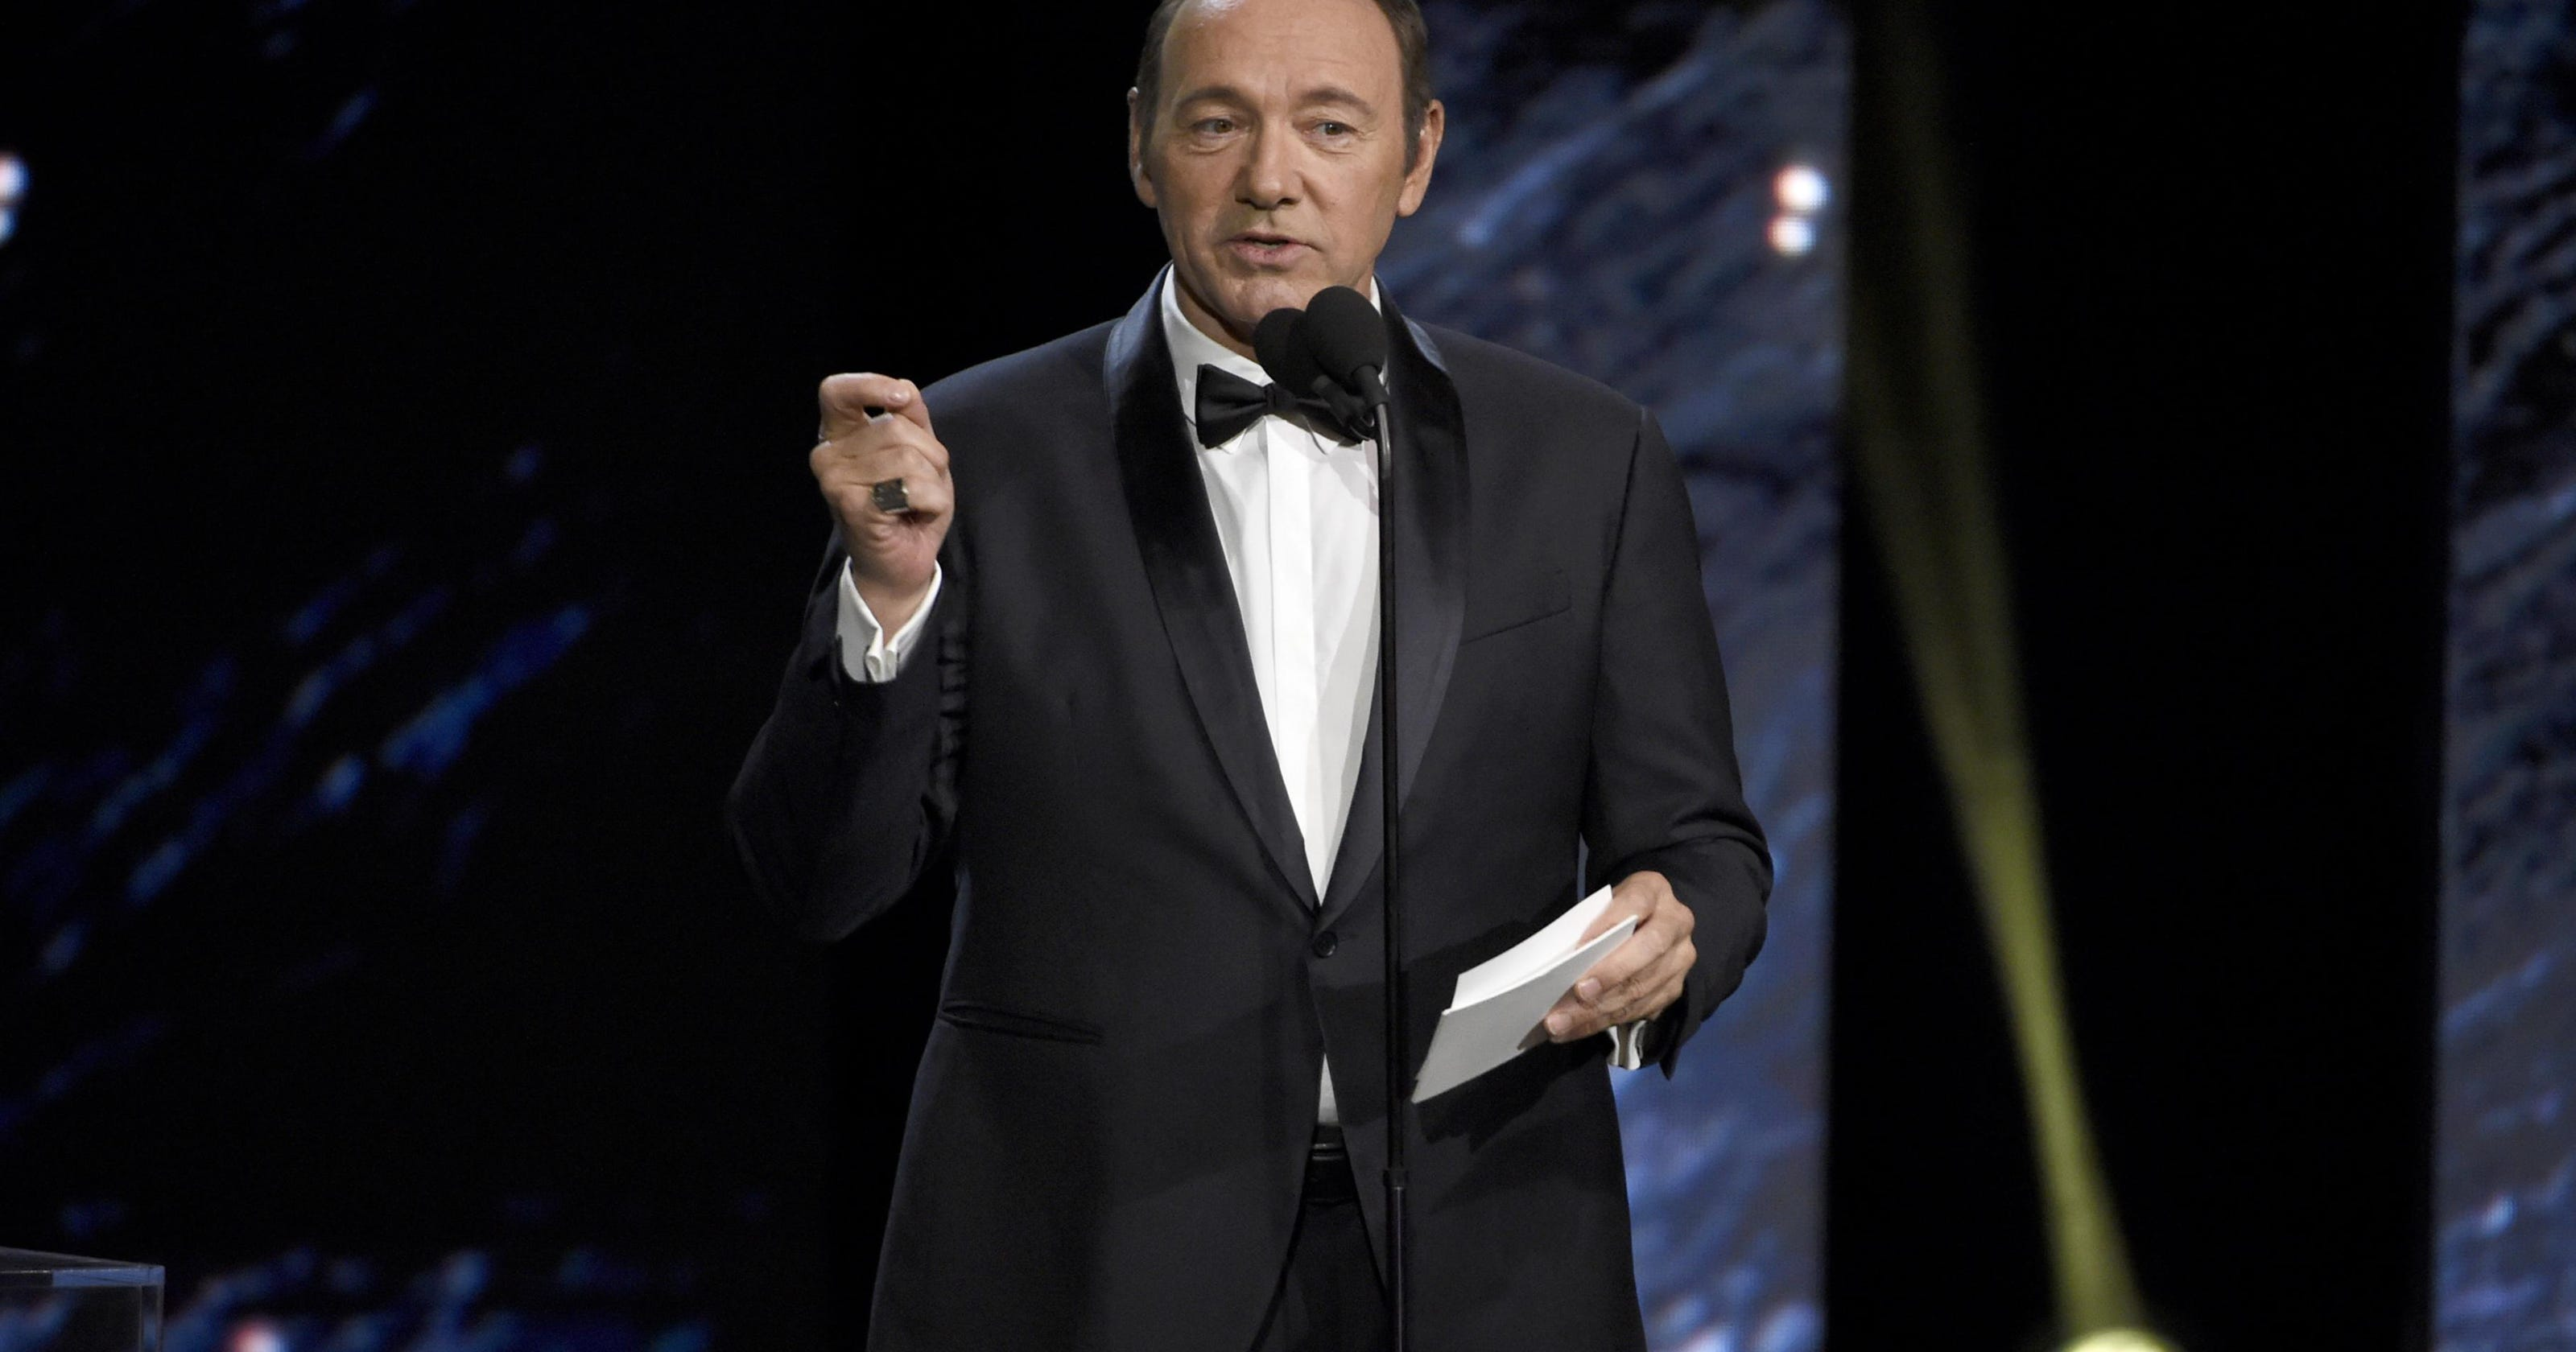 Court records detail Spacey's encounter with man